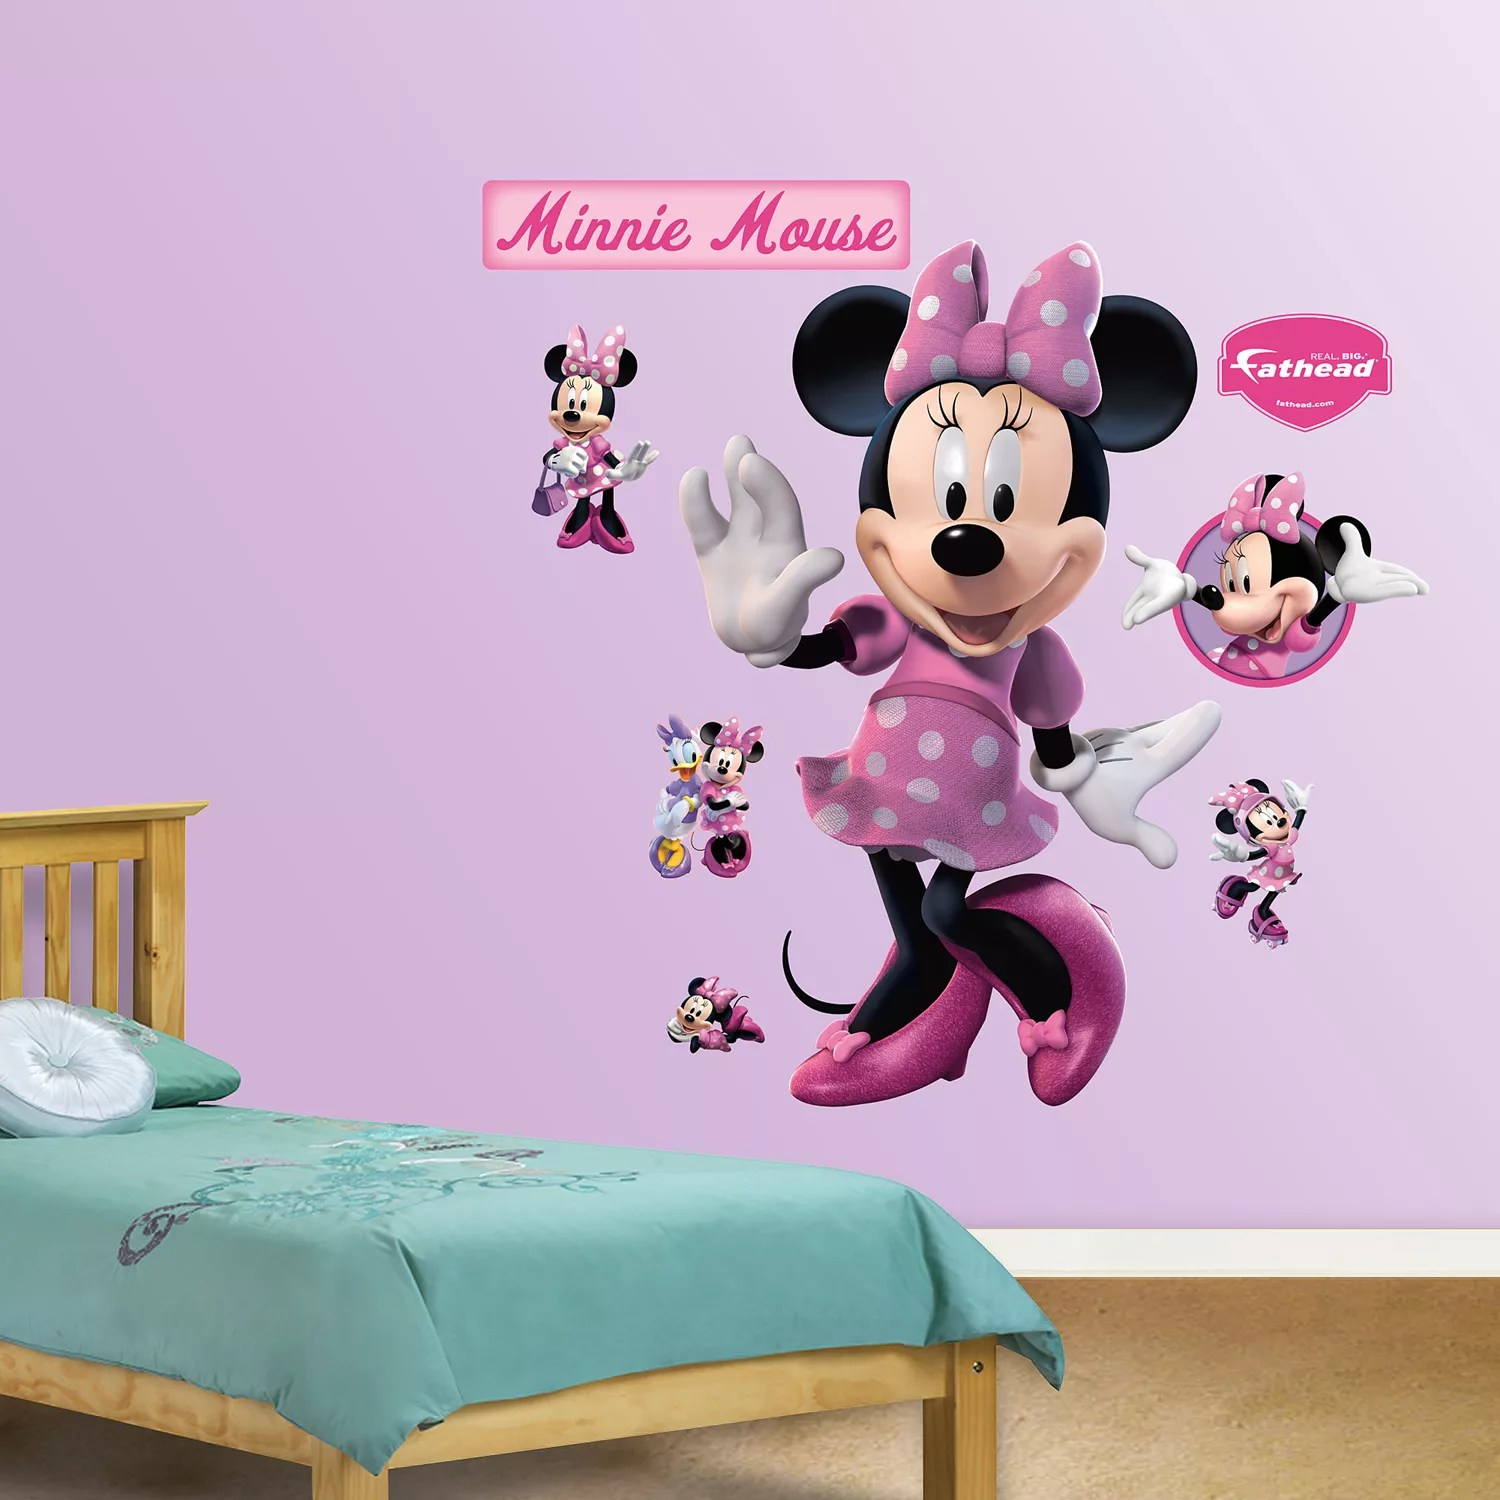 disney mickey mouse friends minnie mouse wall decals by fathead